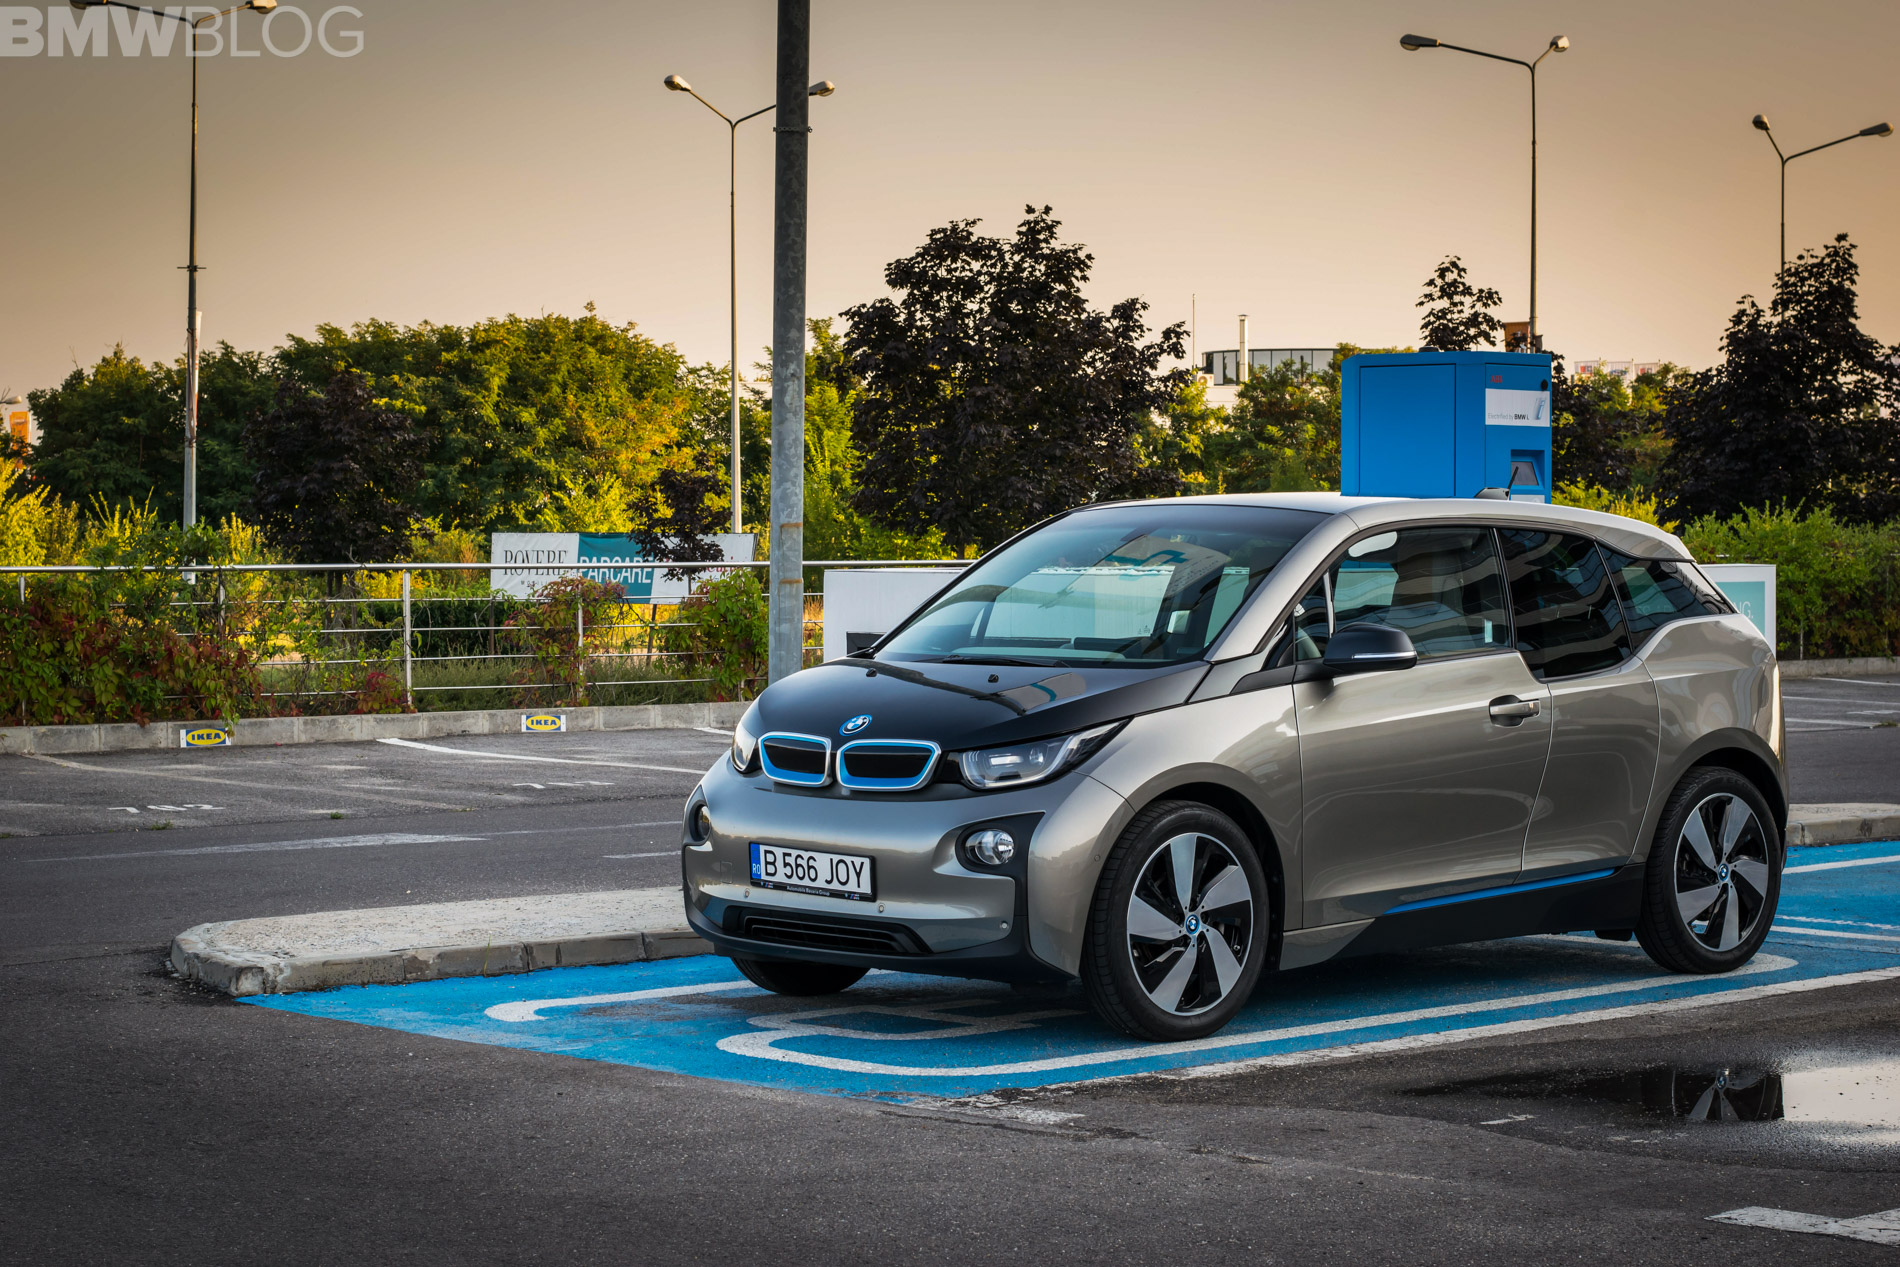 Can You Really Lease A Bmw I3 For 54 Per Month